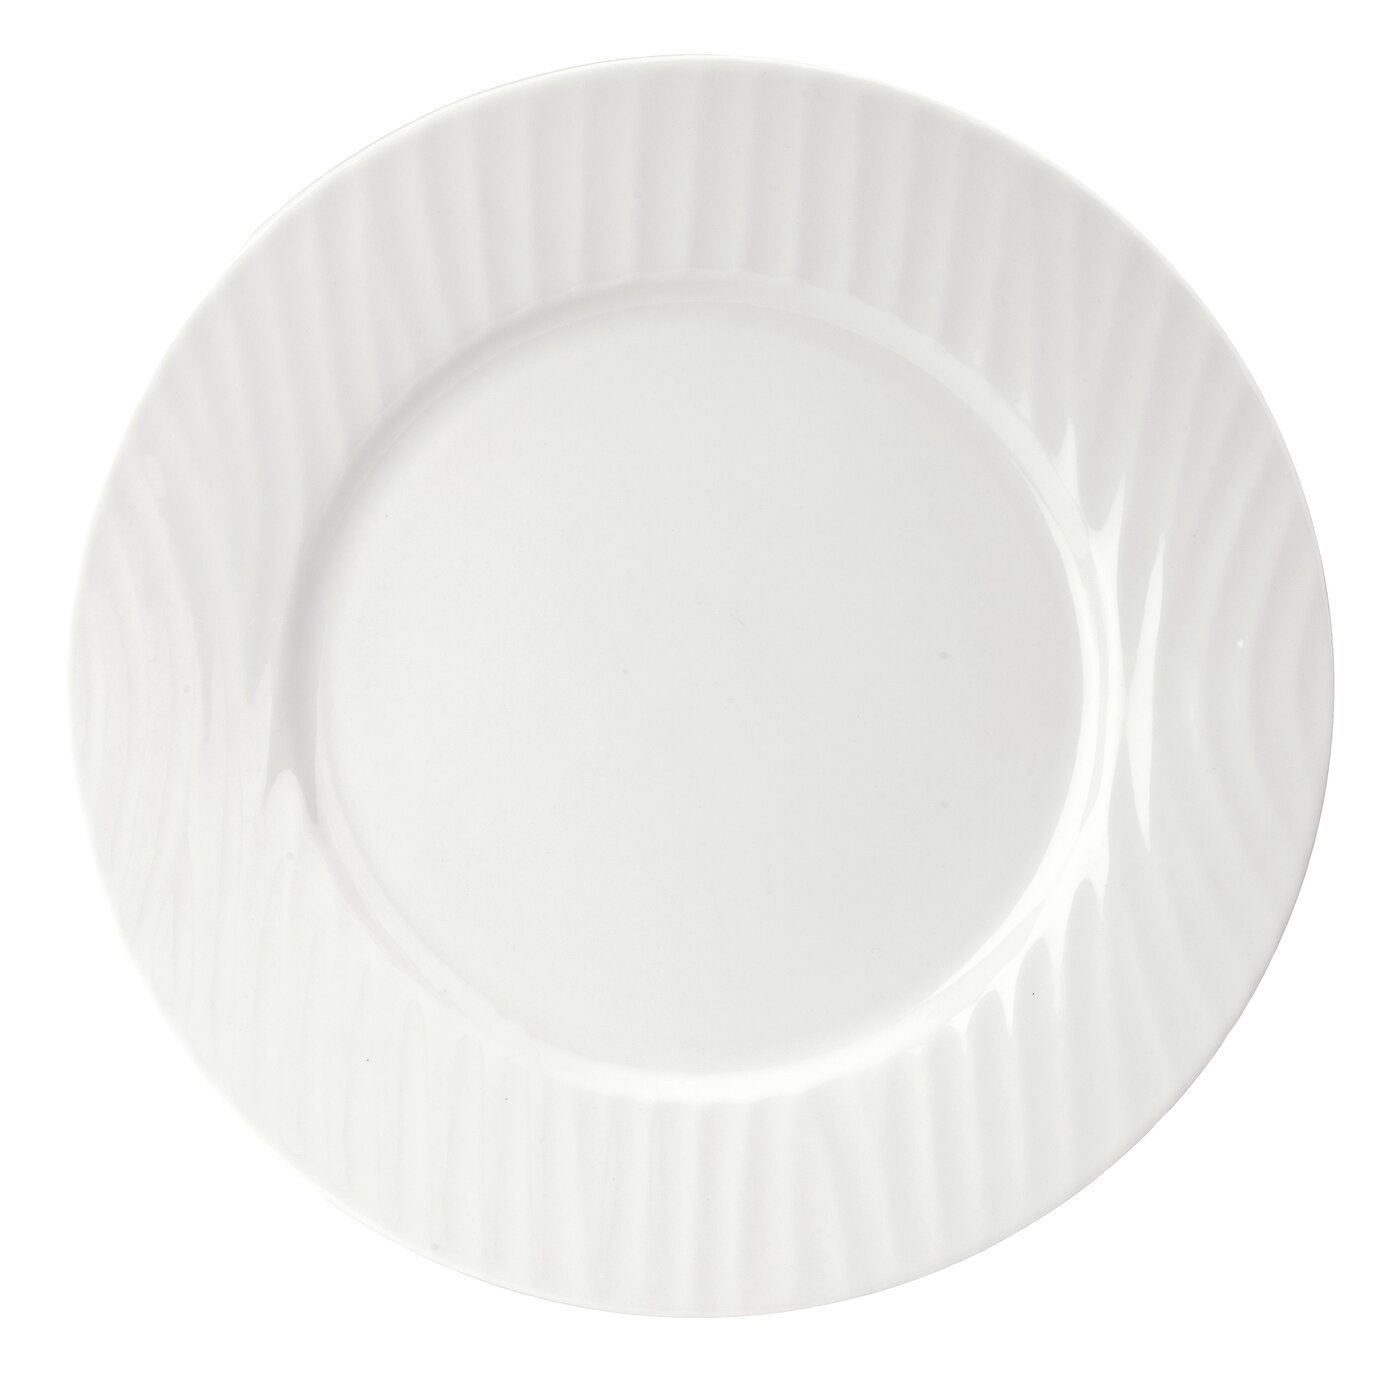 Sophie Conran for Portmeirion White Oak 8.5 Inch Rimmed Salad Plate image number null